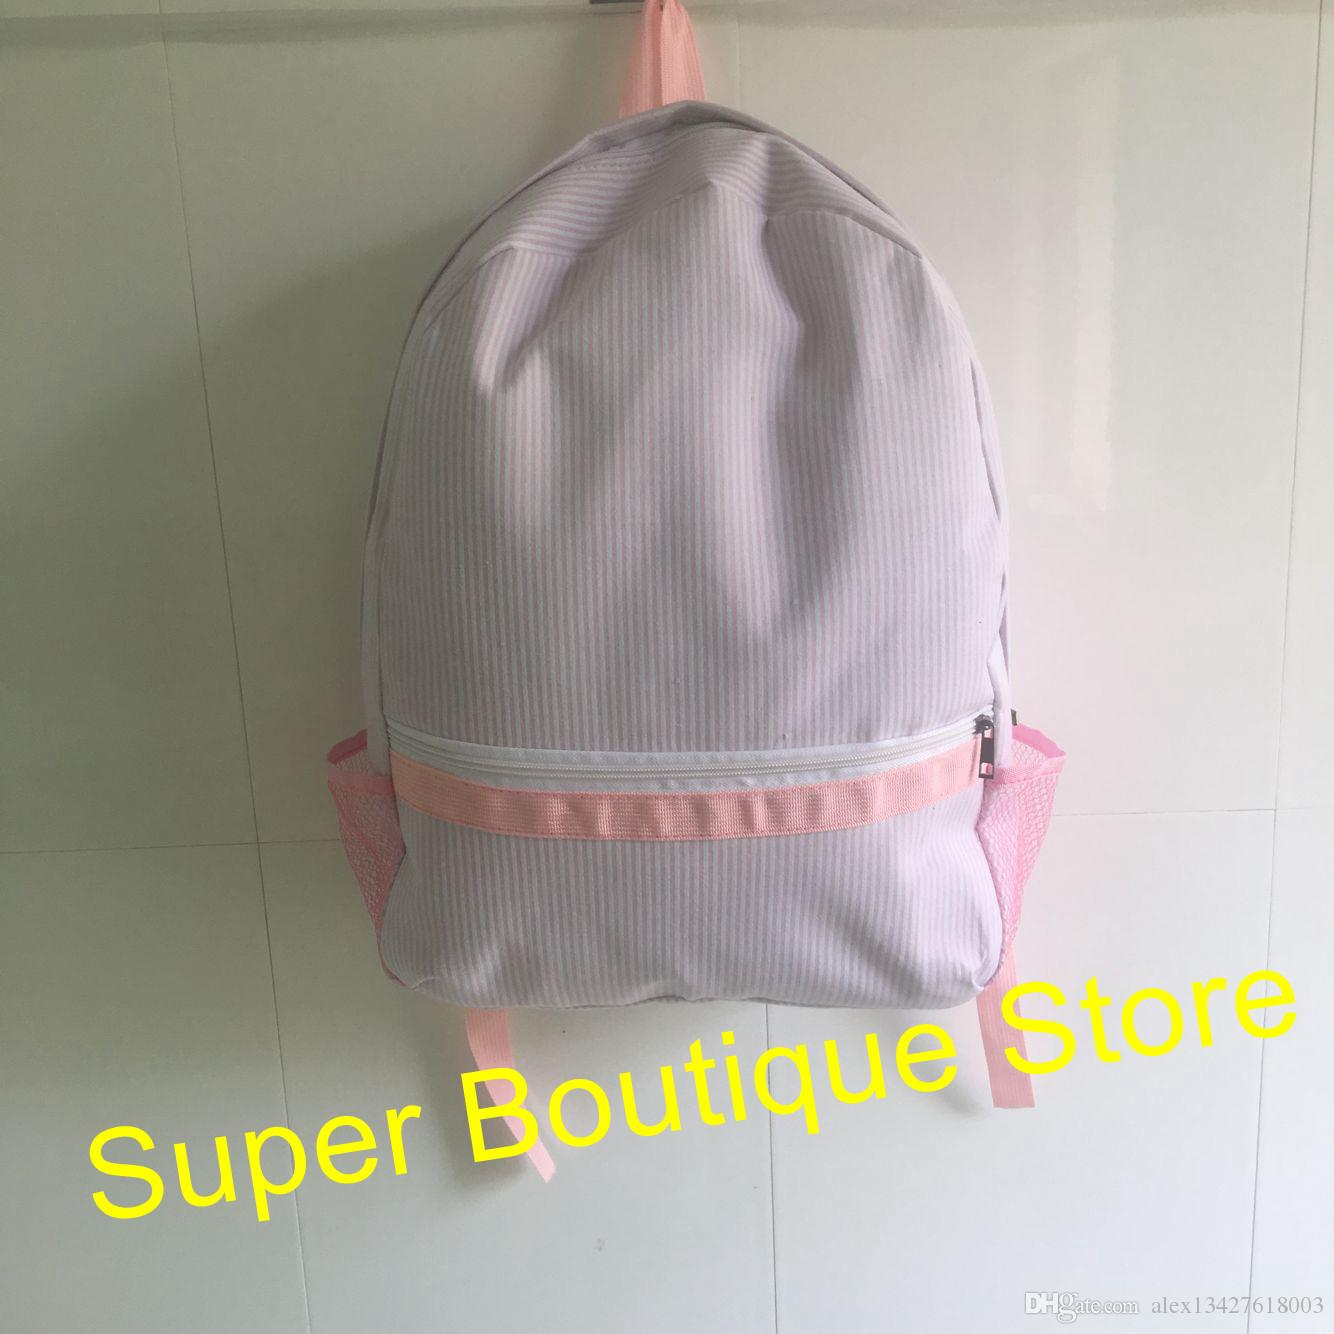 d509f5c20f79 2019 Hot Selling Monogram Seersucker Backpack Student School Bags Good  Quality Personalize Kids Toddler Backpack Bag From Alex13427618003